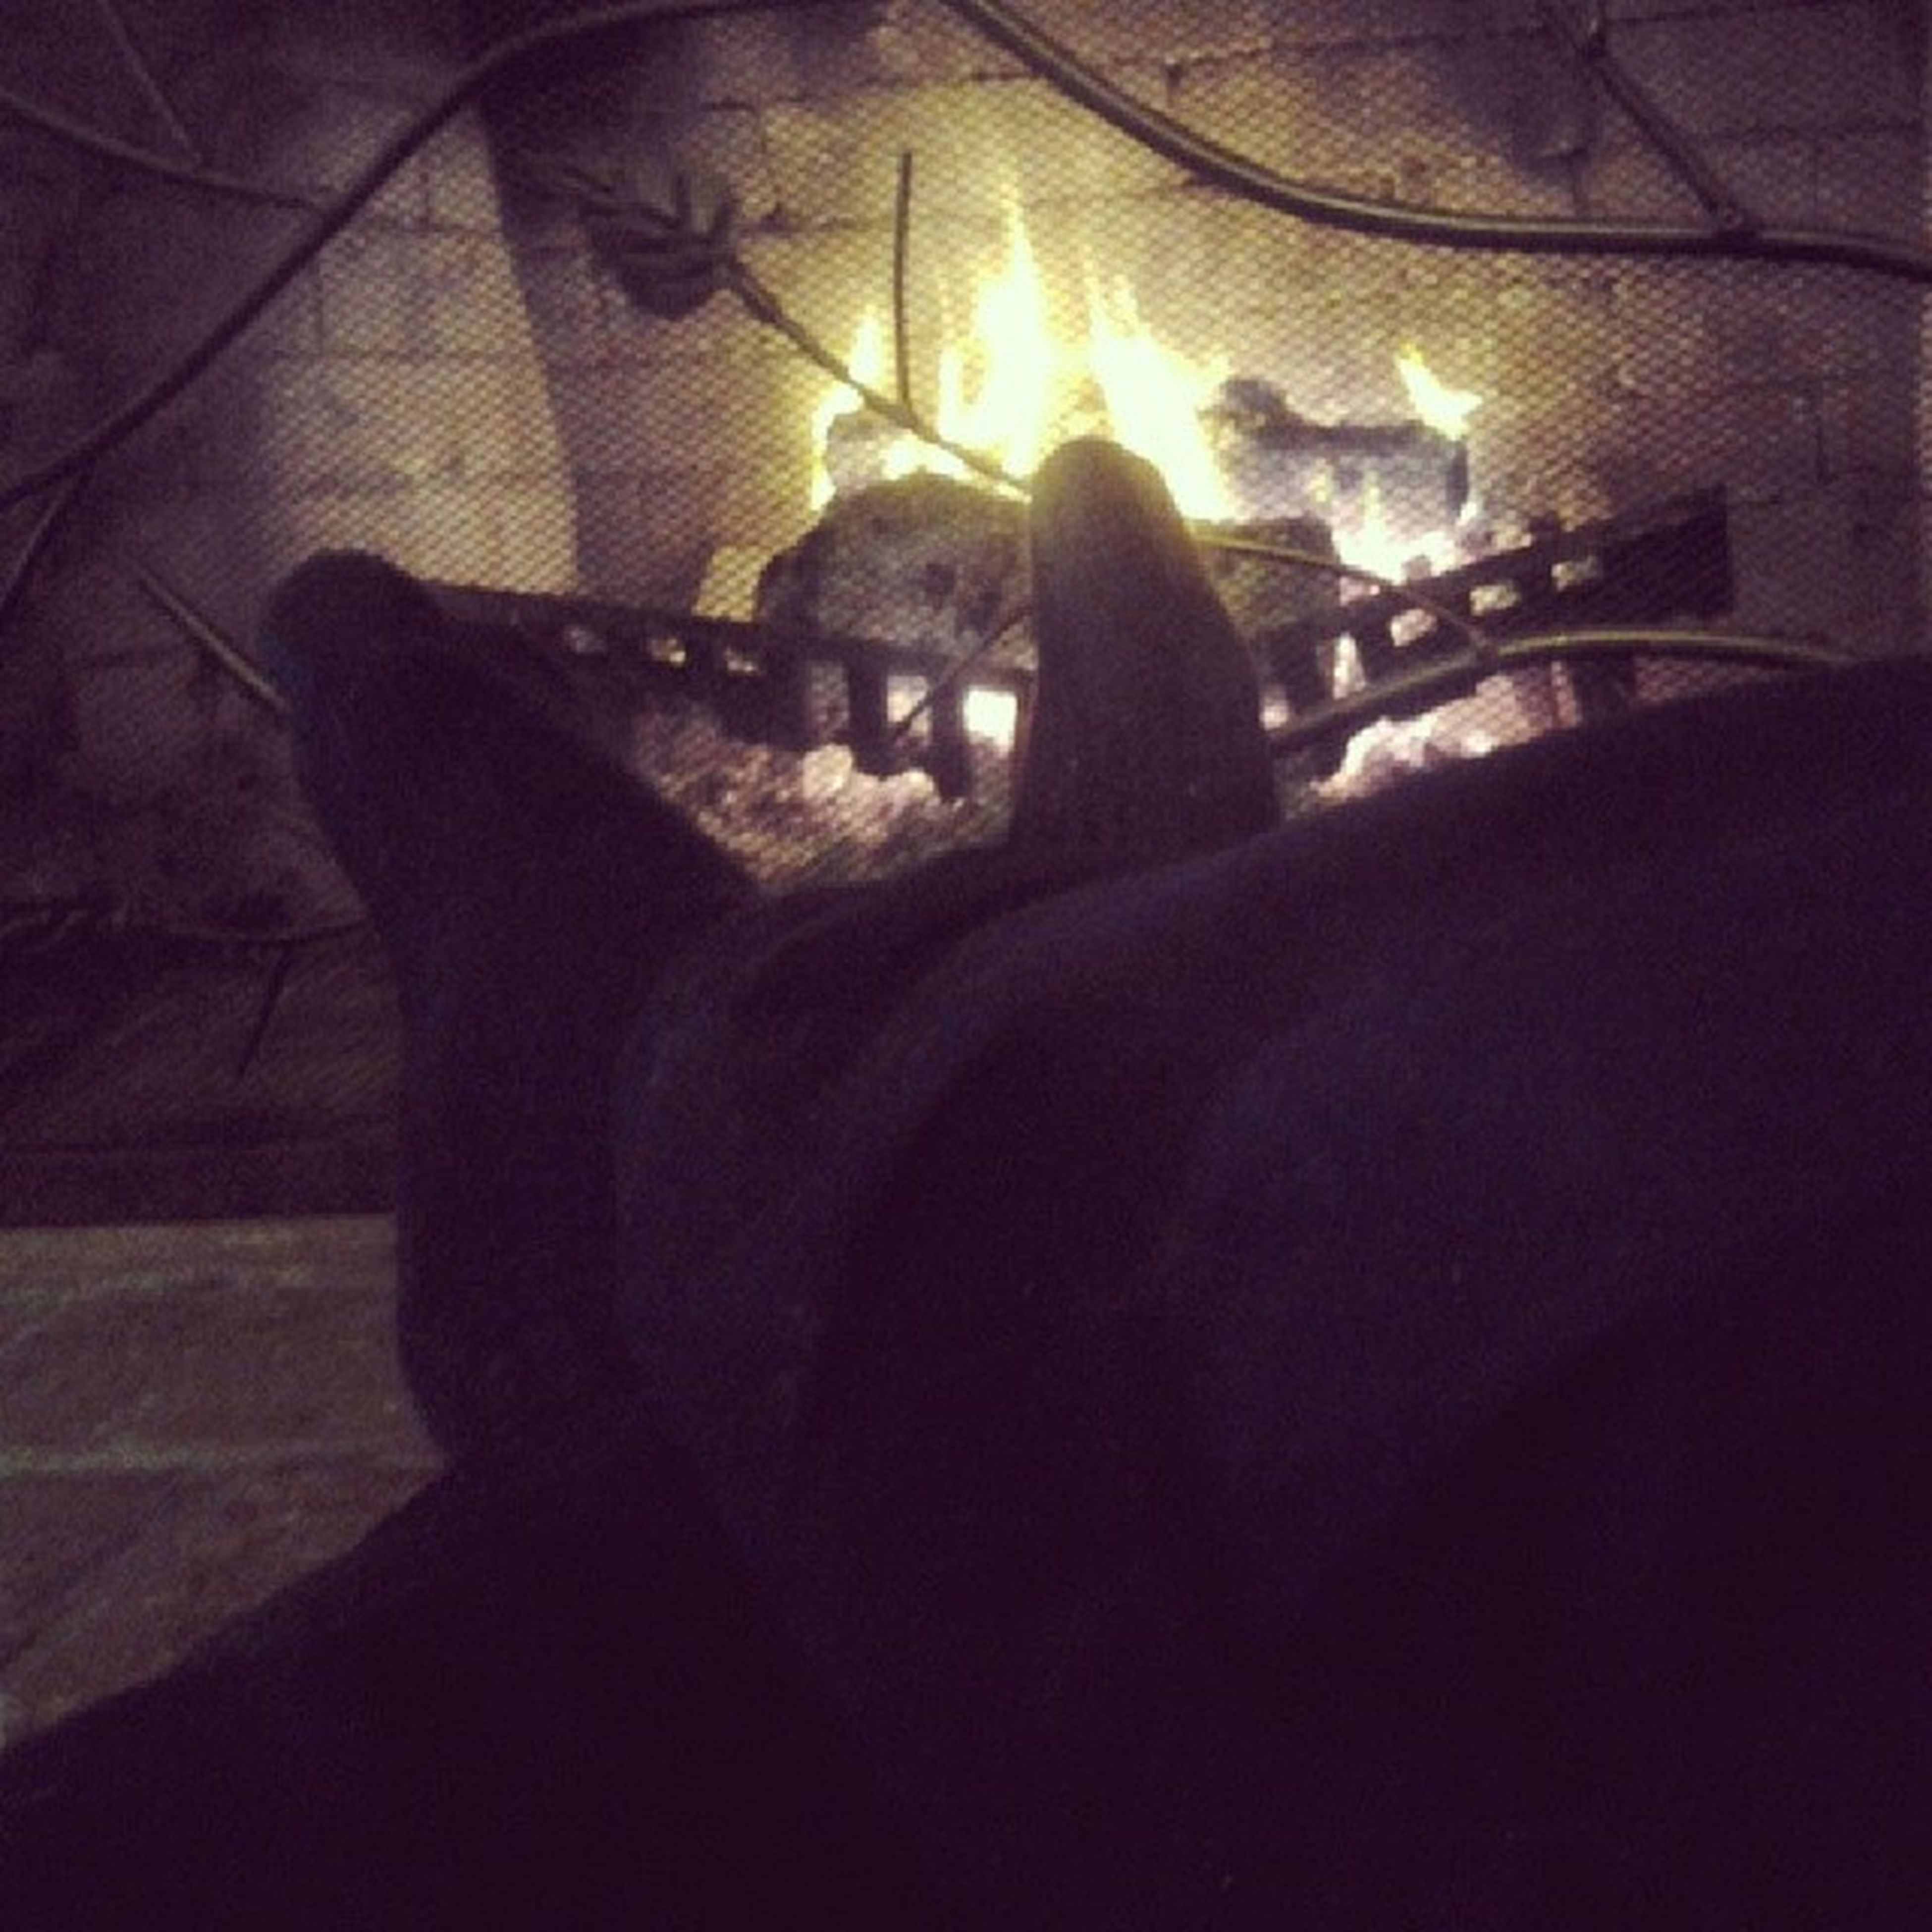 Kicked up my feet after work, enjoying the fire. EnjoyingThis Afterwork NiceFire